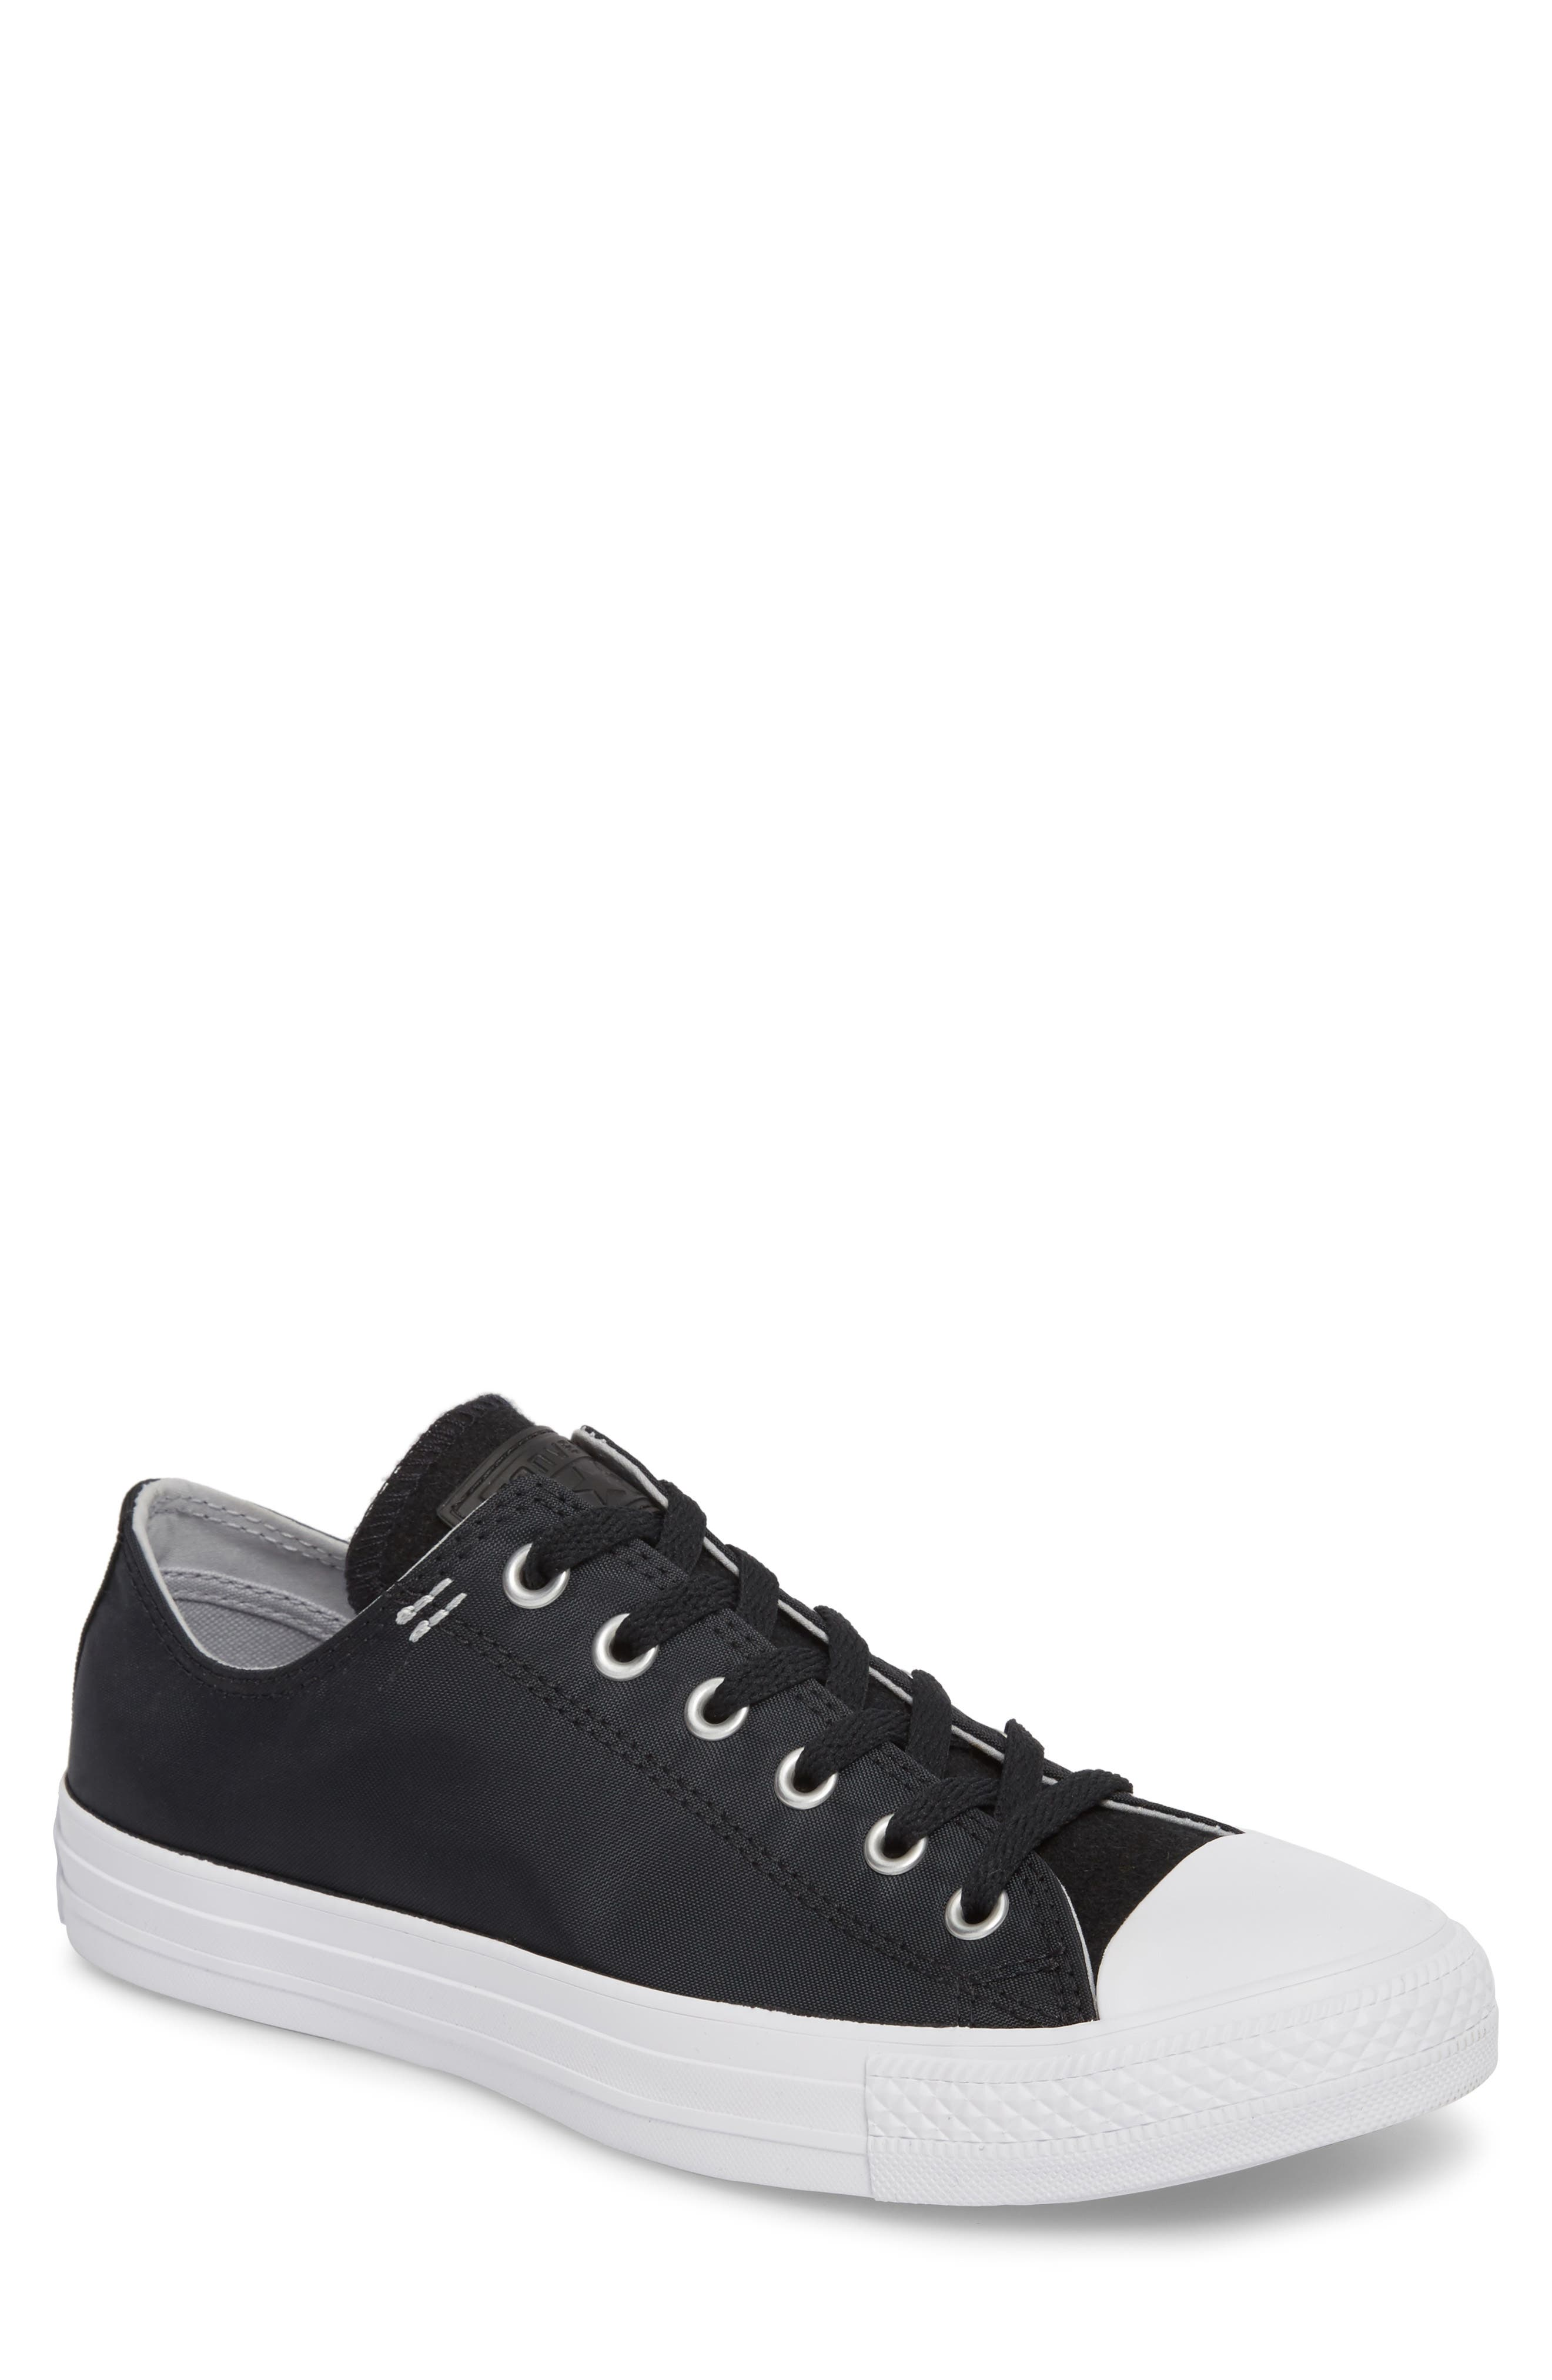 All Star<sup>®</sup> OX Low Top Sneaker,                             Main thumbnail 1, color,                             Black